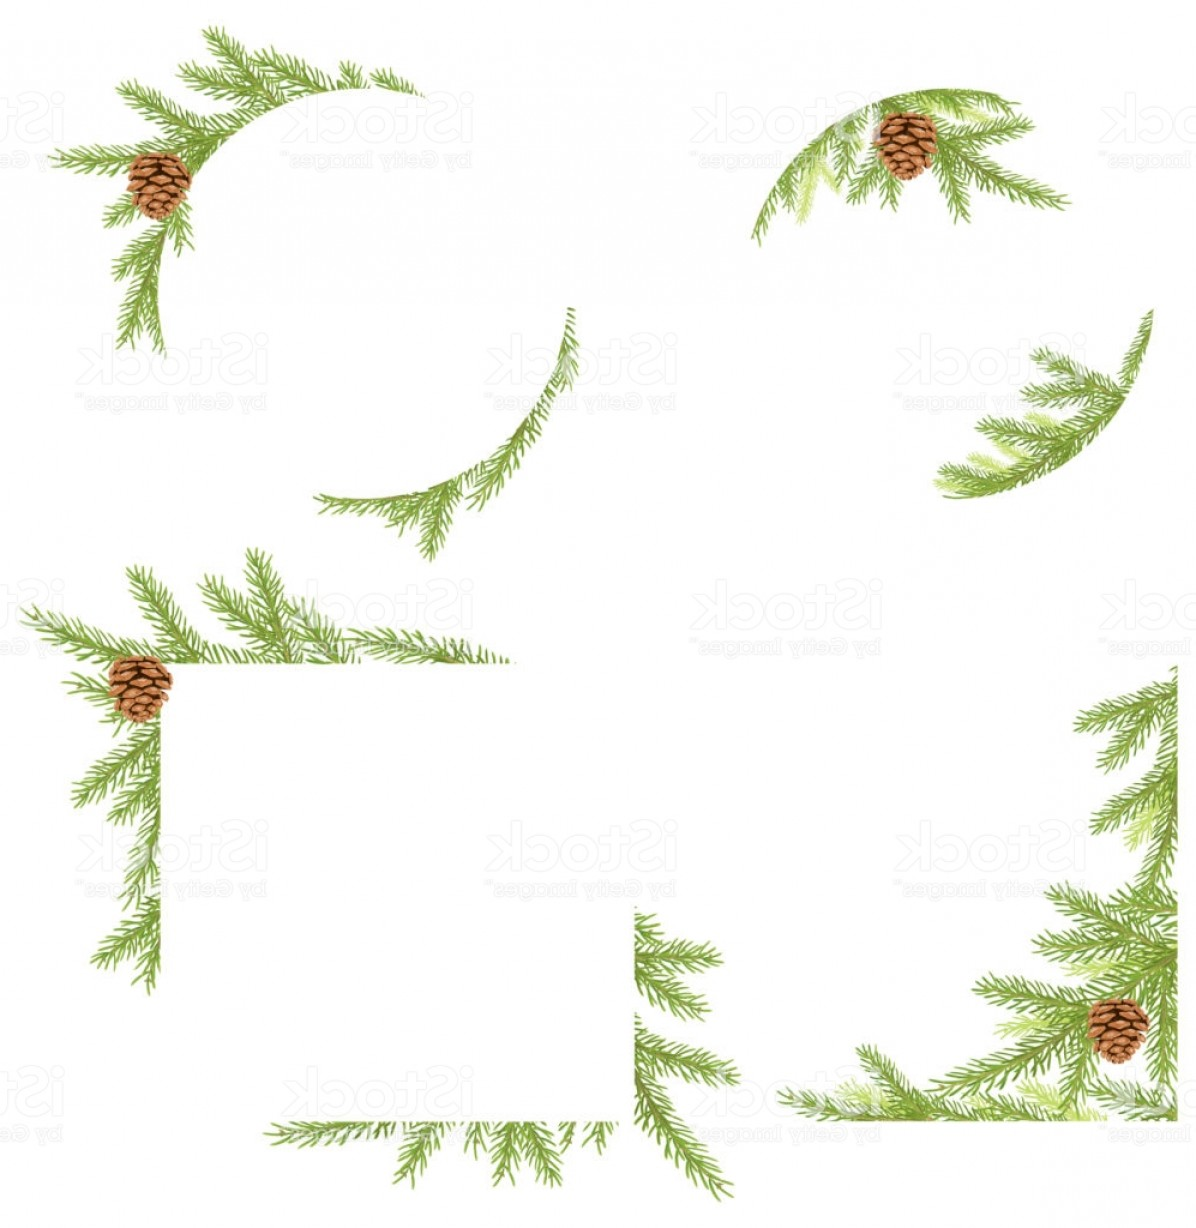 Pine Leaves Vector: Frame With Pine Tree Leaves Gm